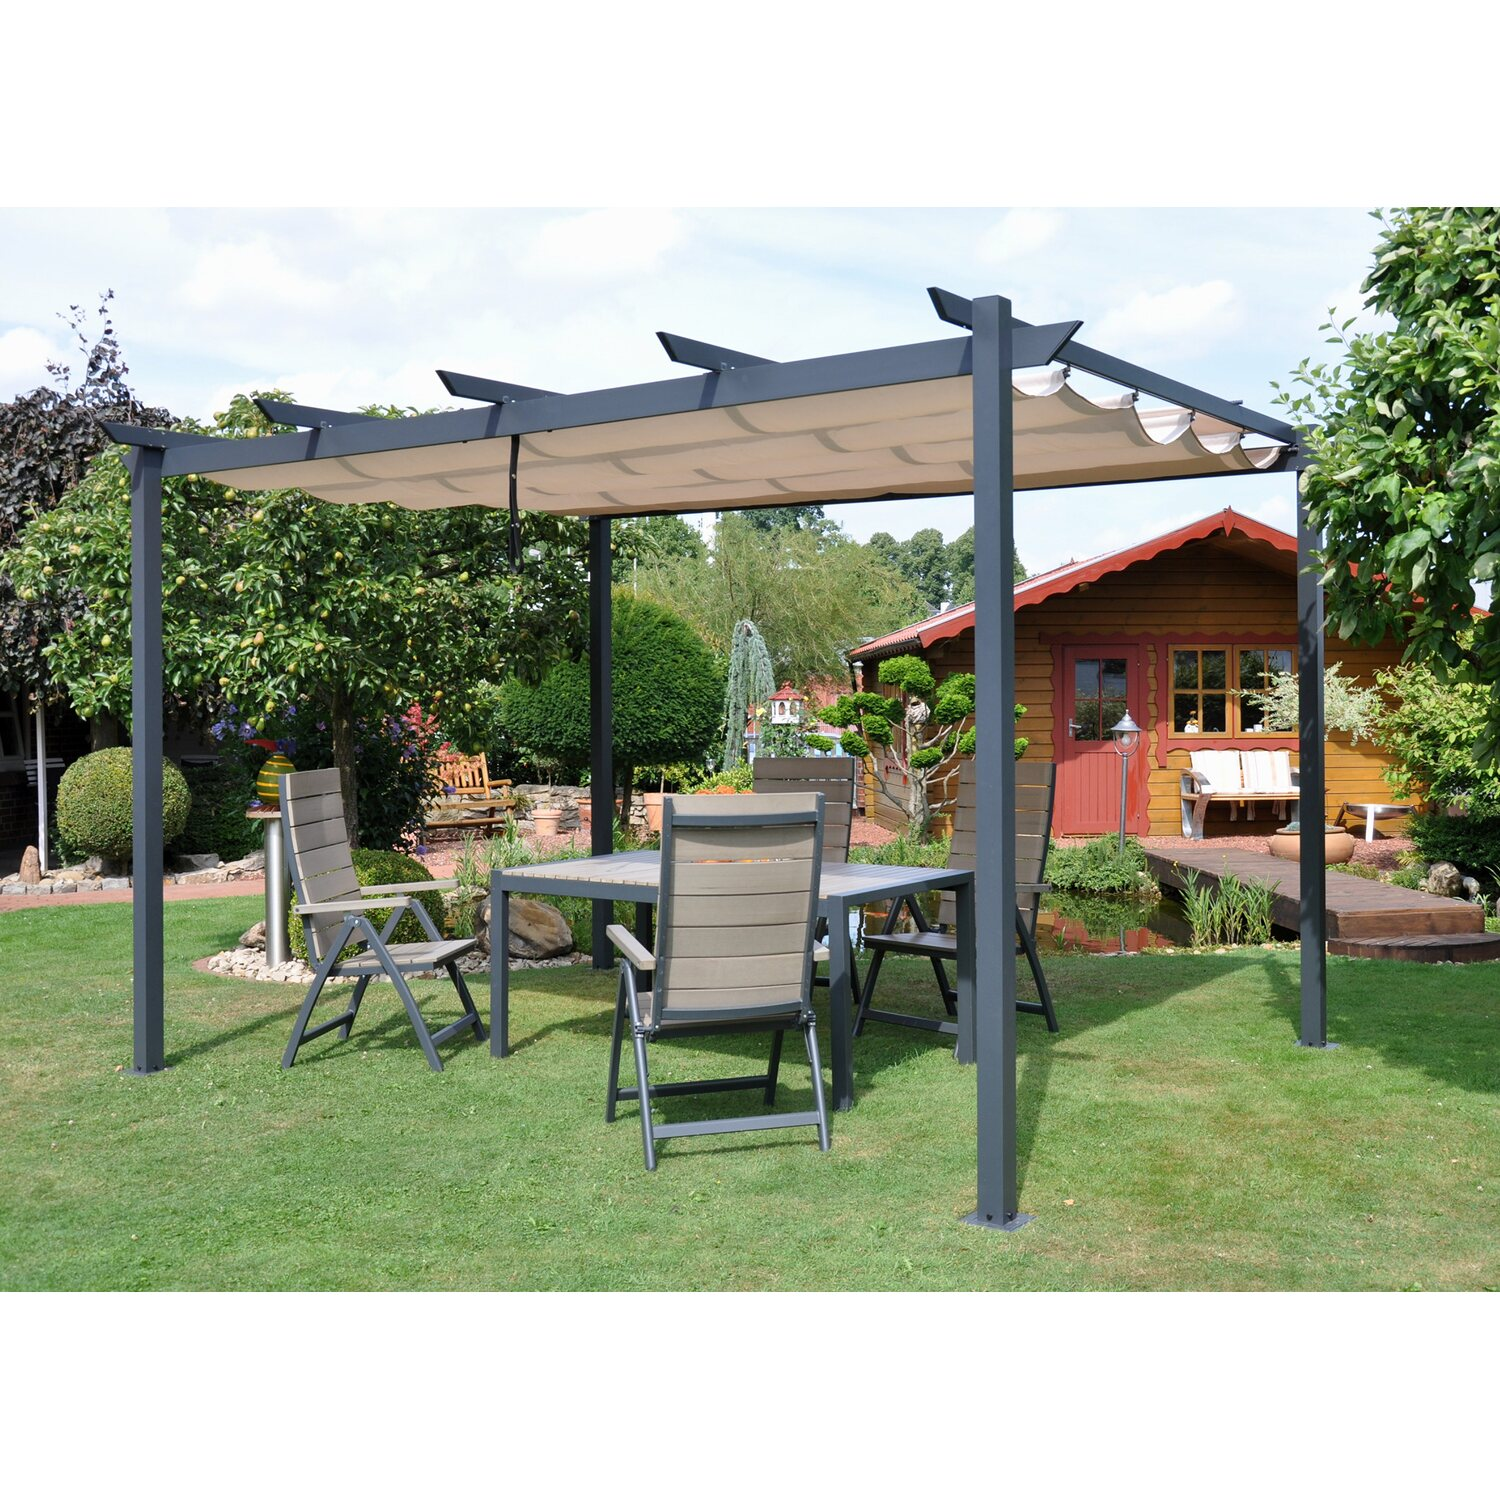 leco pergola 3 m x 4 m kaufen bei obi. Black Bedroom Furniture Sets. Home Design Ideas